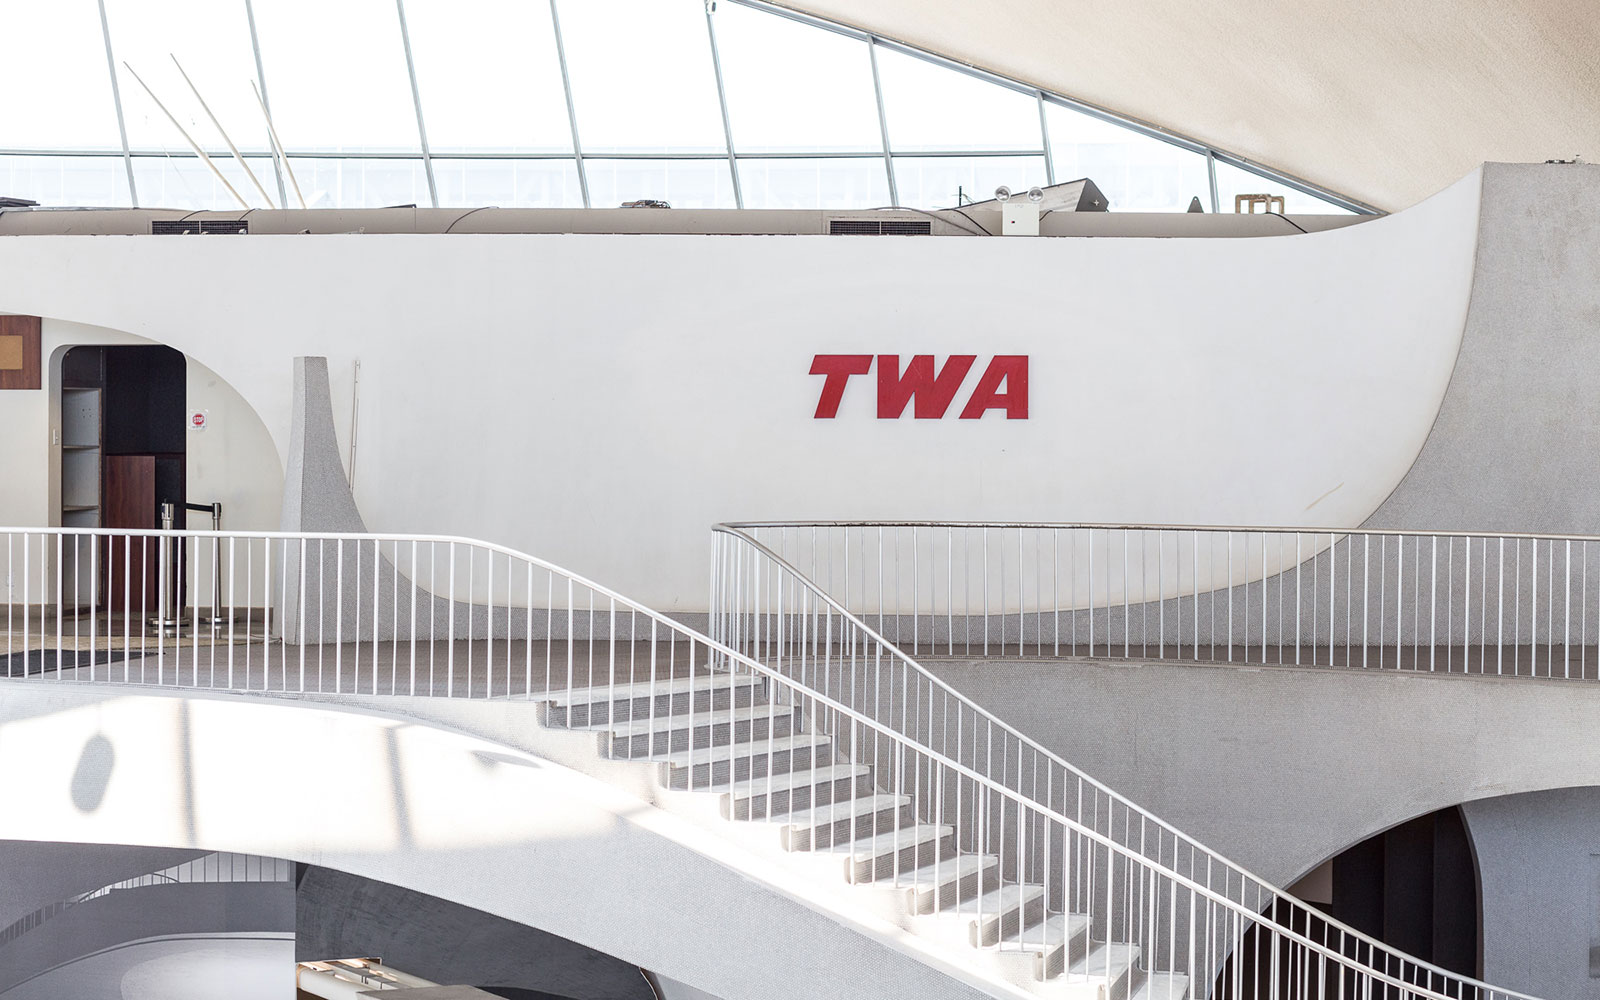 In Photos: the Inextinguishable Glamour of New York's 1962 TWA Terminal